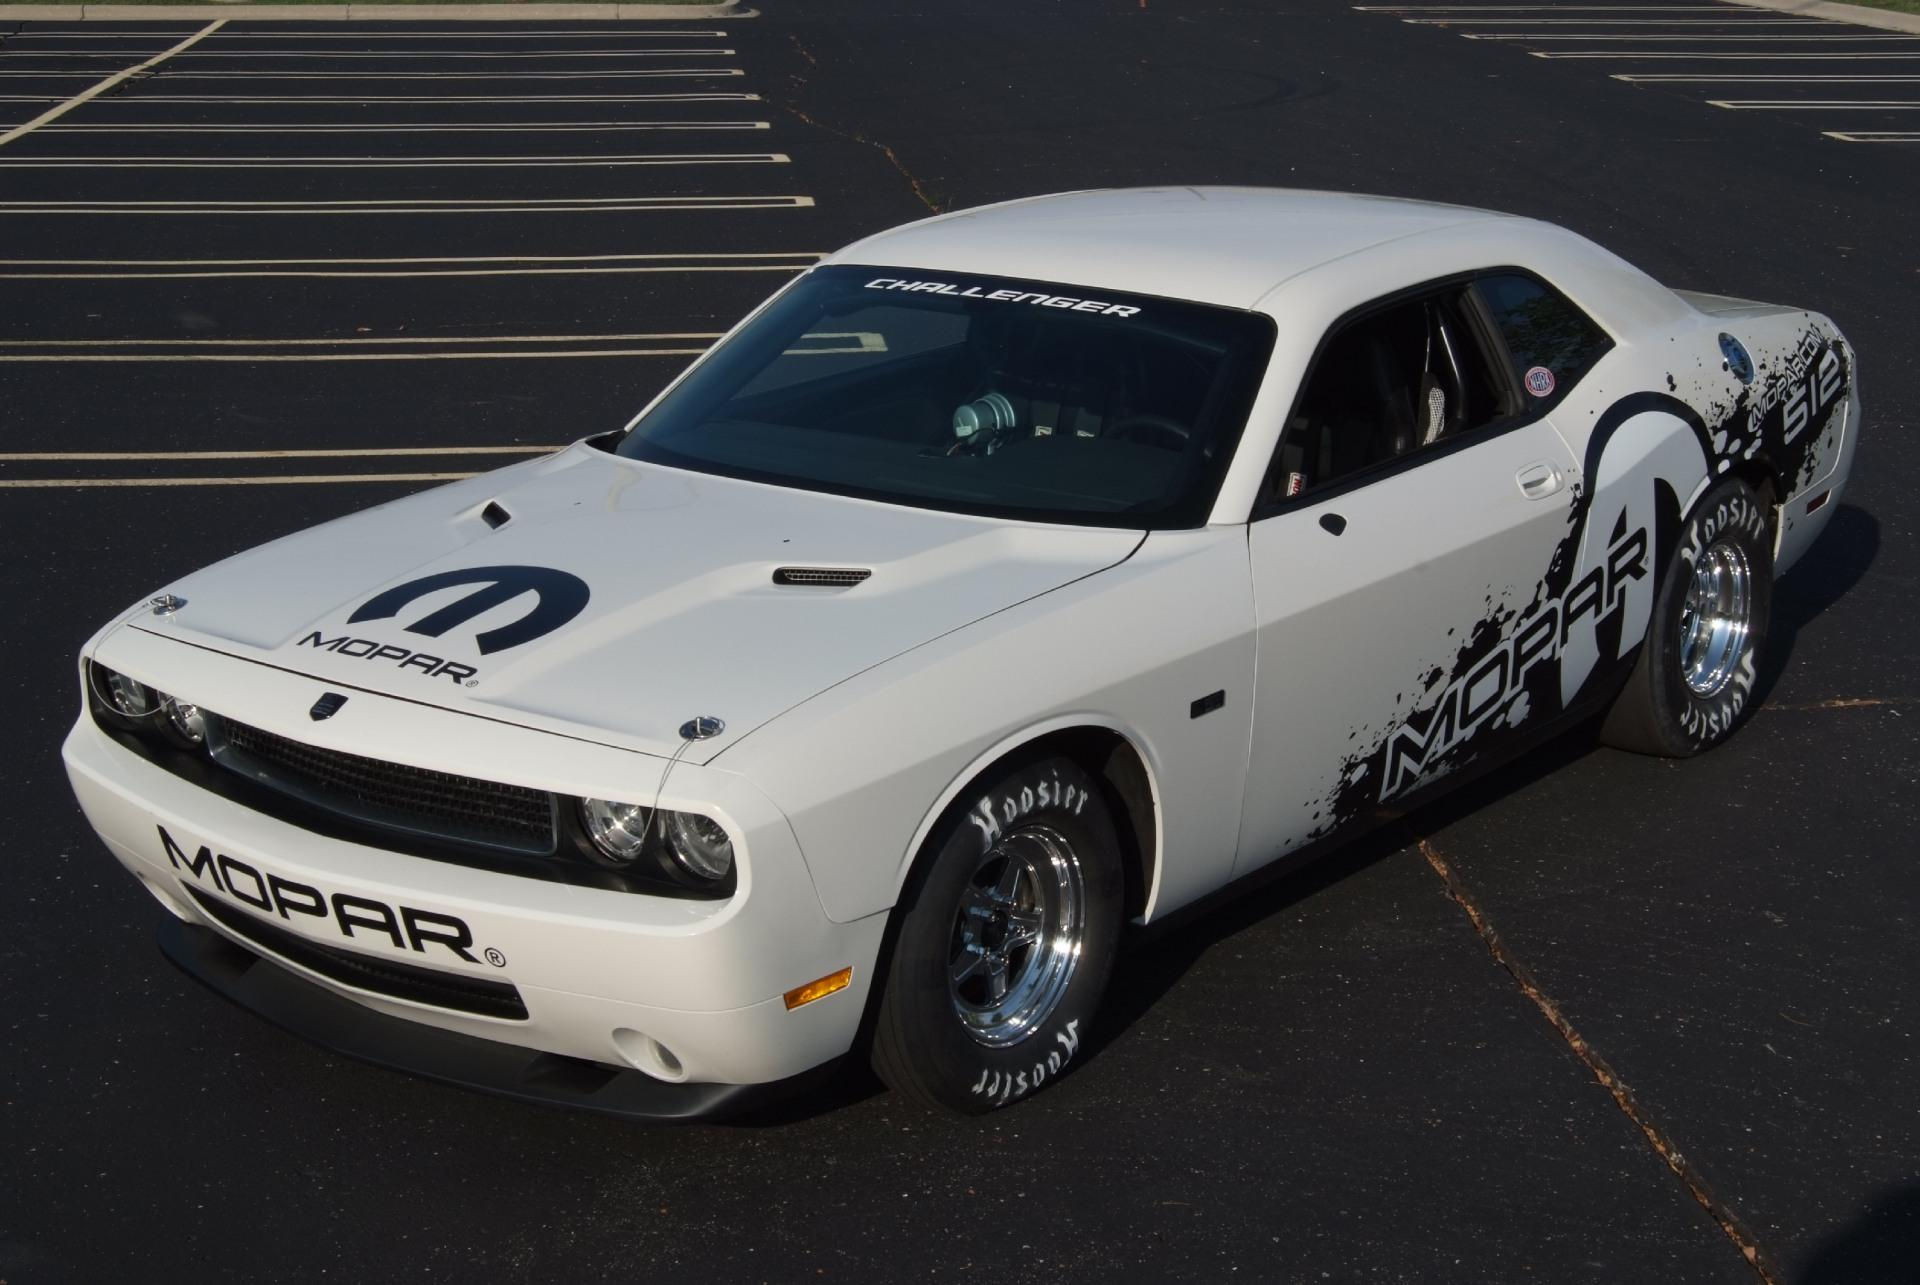 2011 Dodge Challenger Drag Pak News and Information, Research, and Pricing